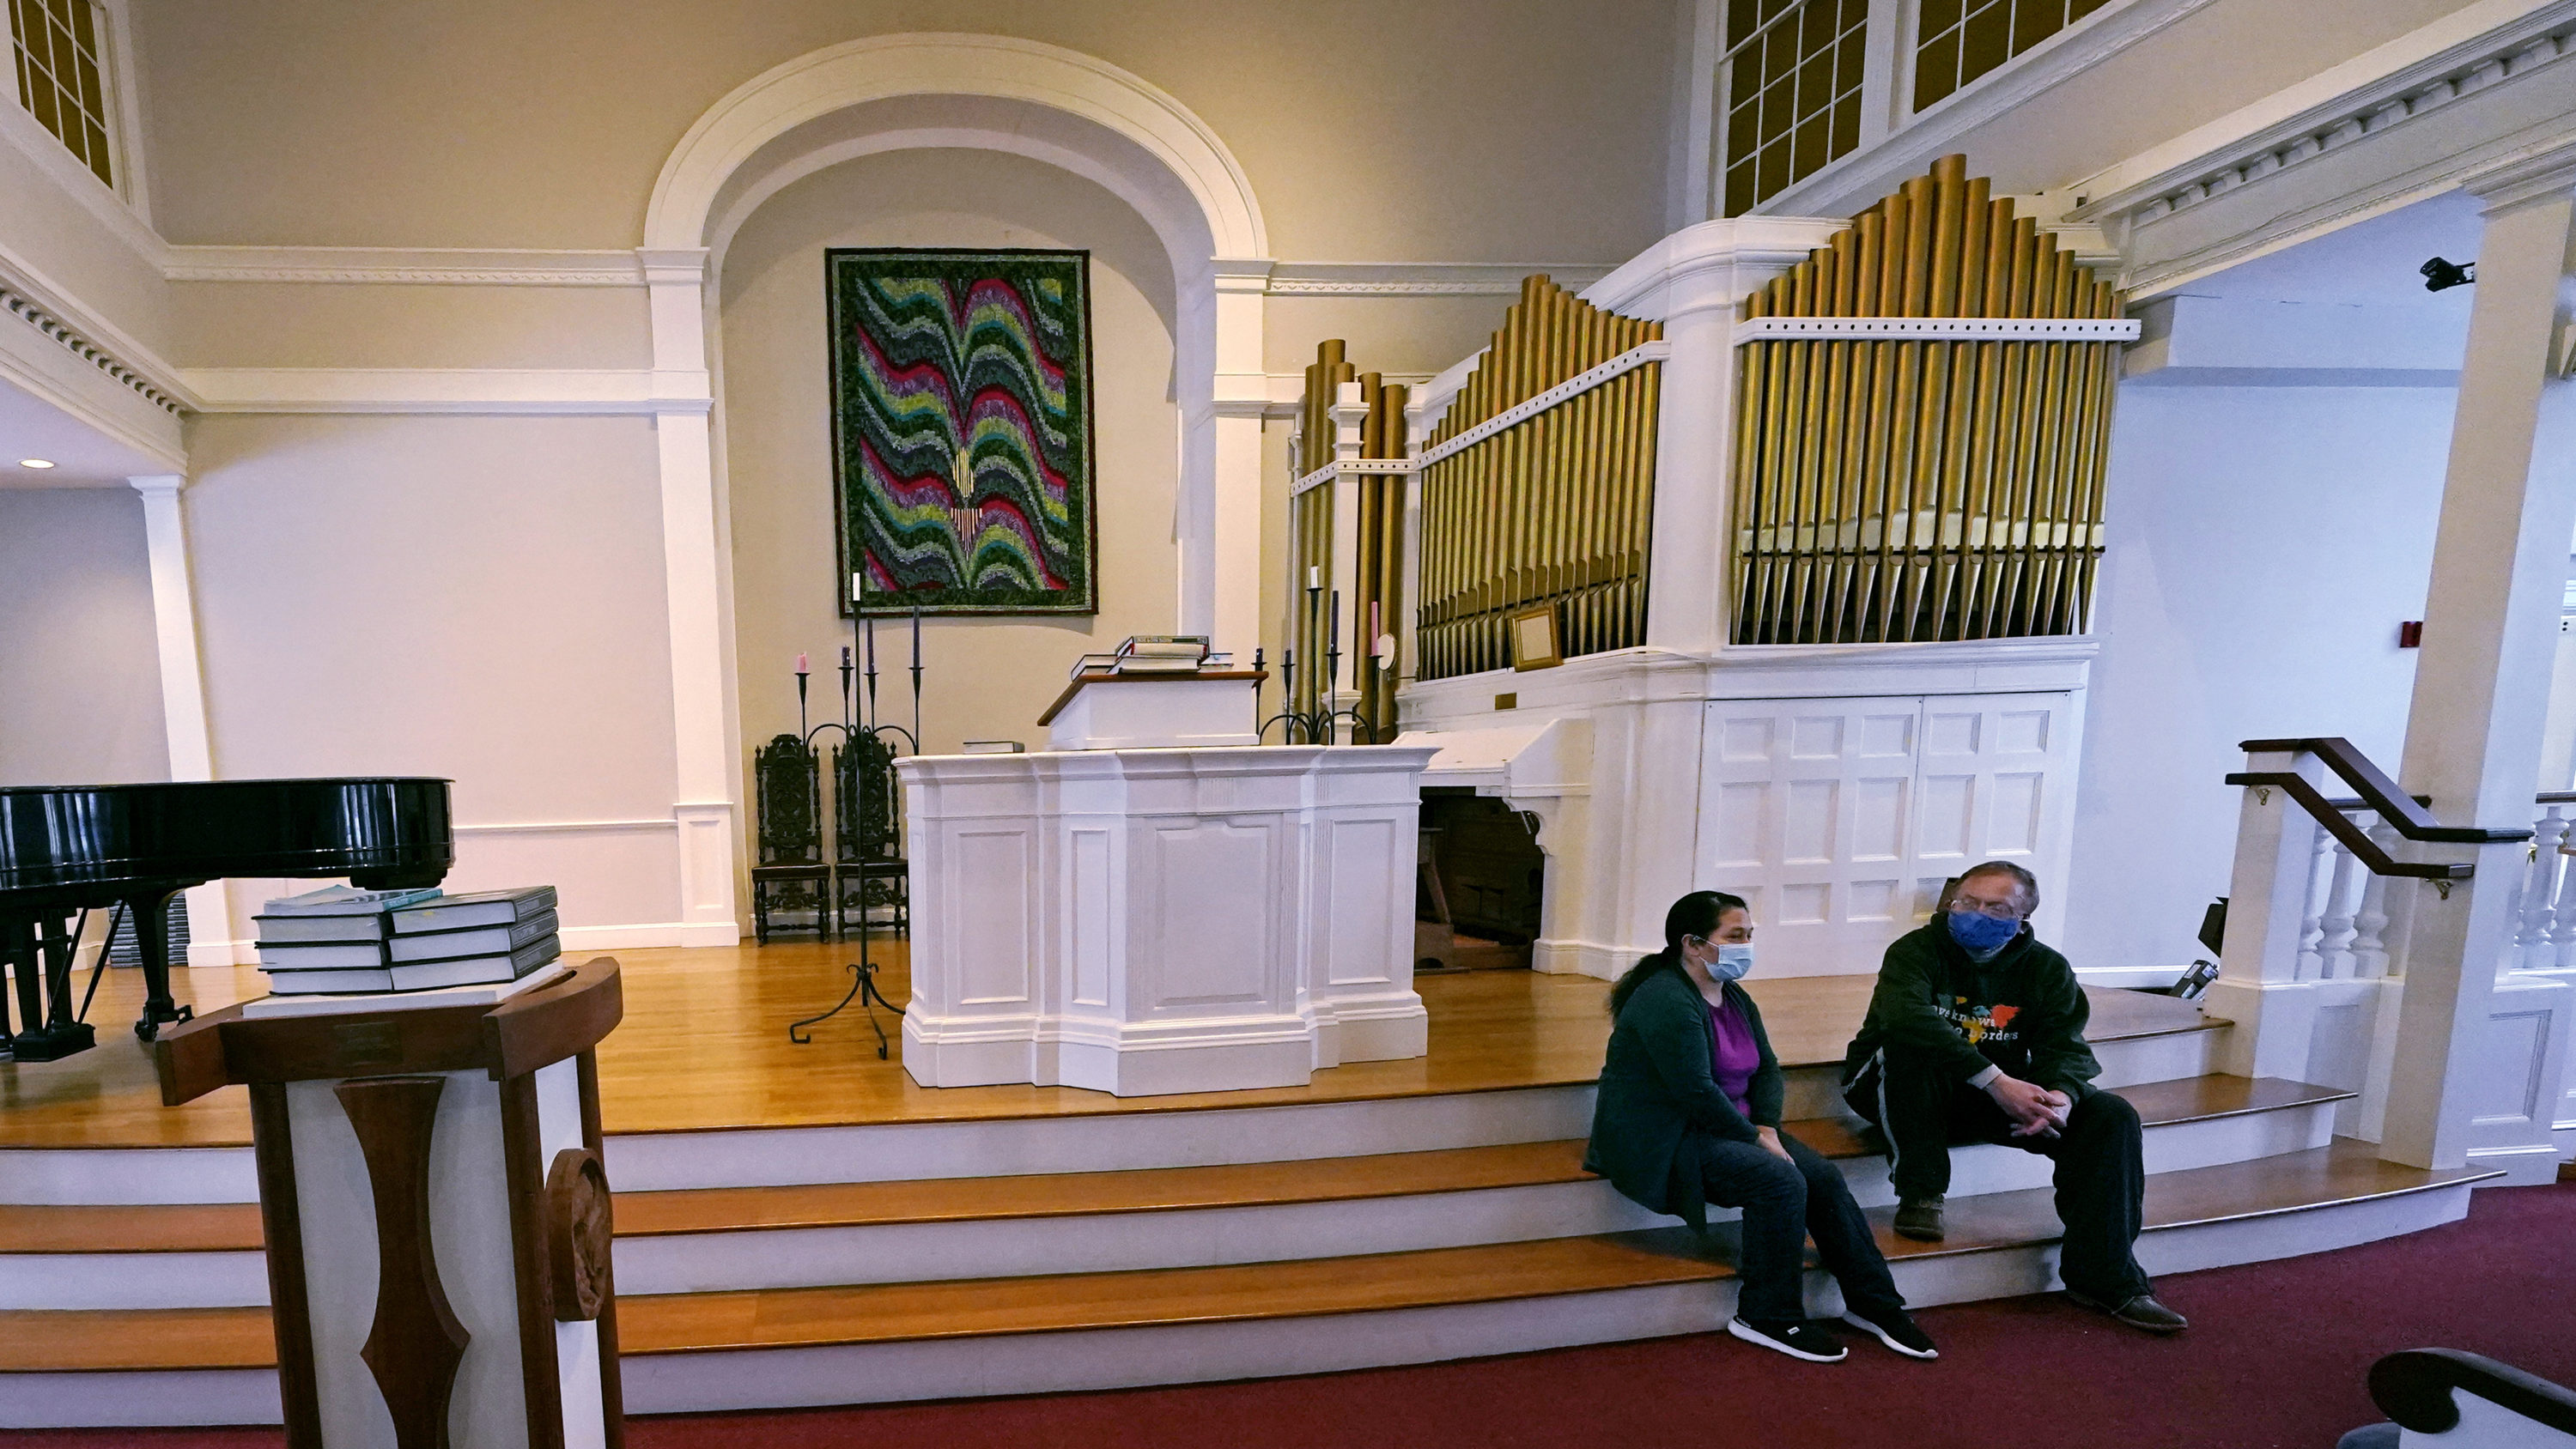 Maria Macario, left, talks with Rev. John Gibbons while seated on the steps to the altar at the First Parish church in Bedford. (Charles Krupa/AP)